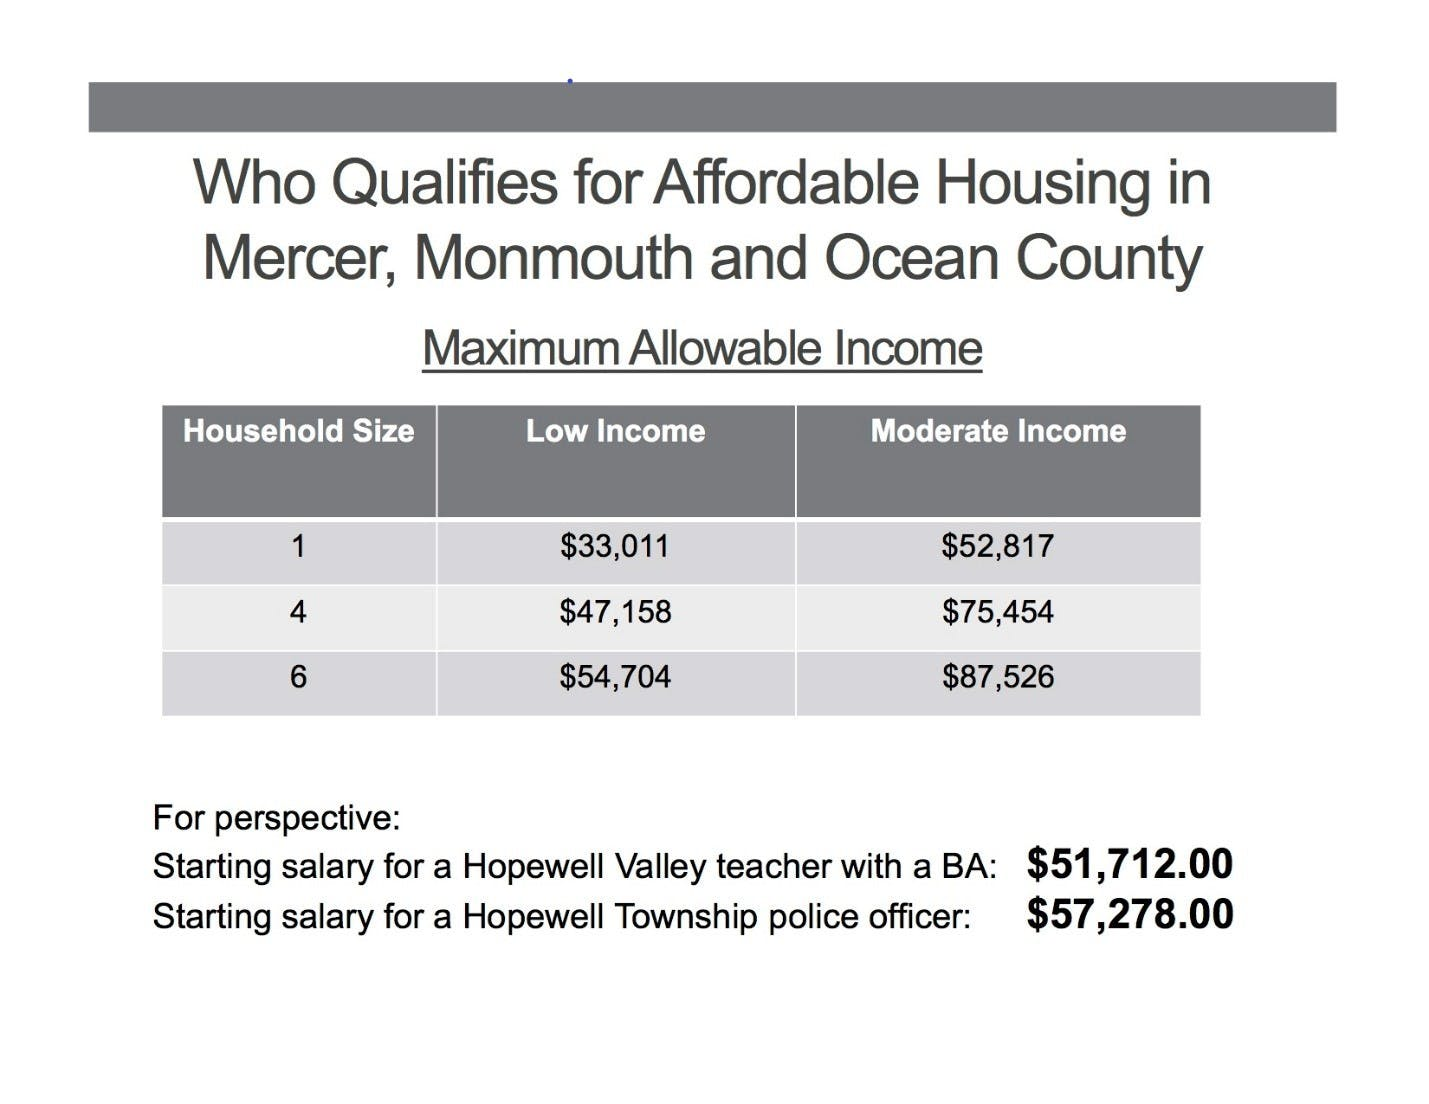 Maximum allowable income for affordable housing in Mercer, Monmouth and Ocean counties